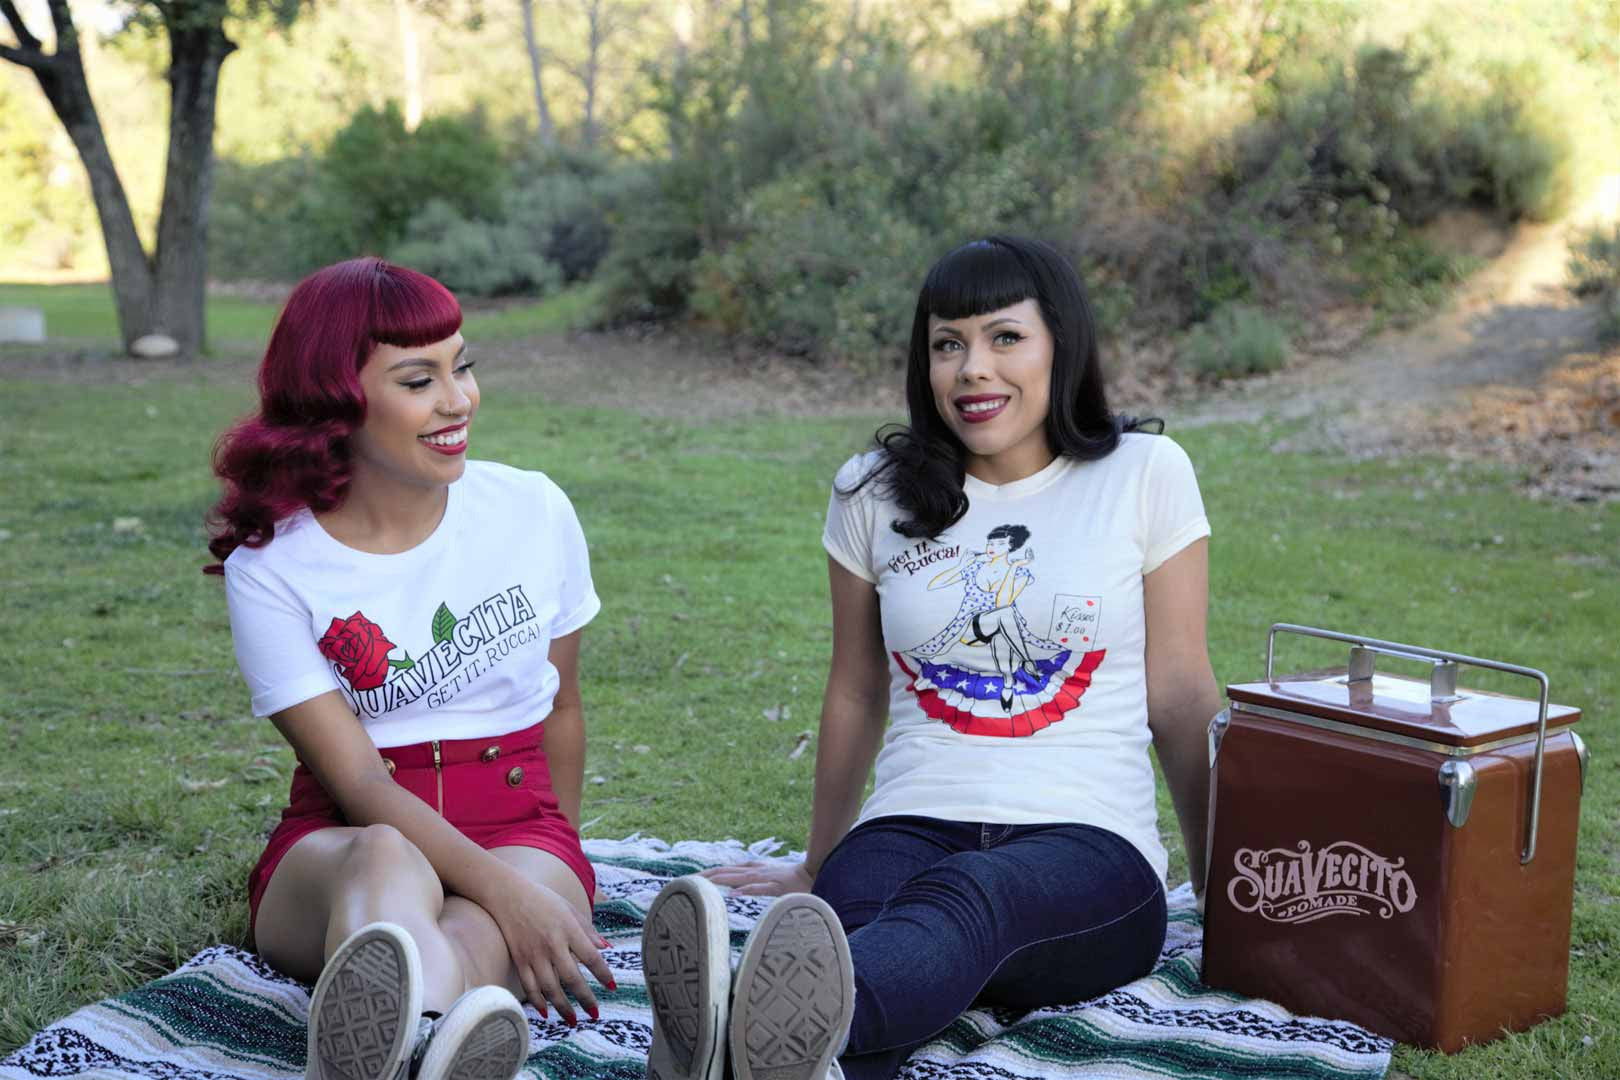 Suavecita babes having a picnic under the shade on a wam spring day